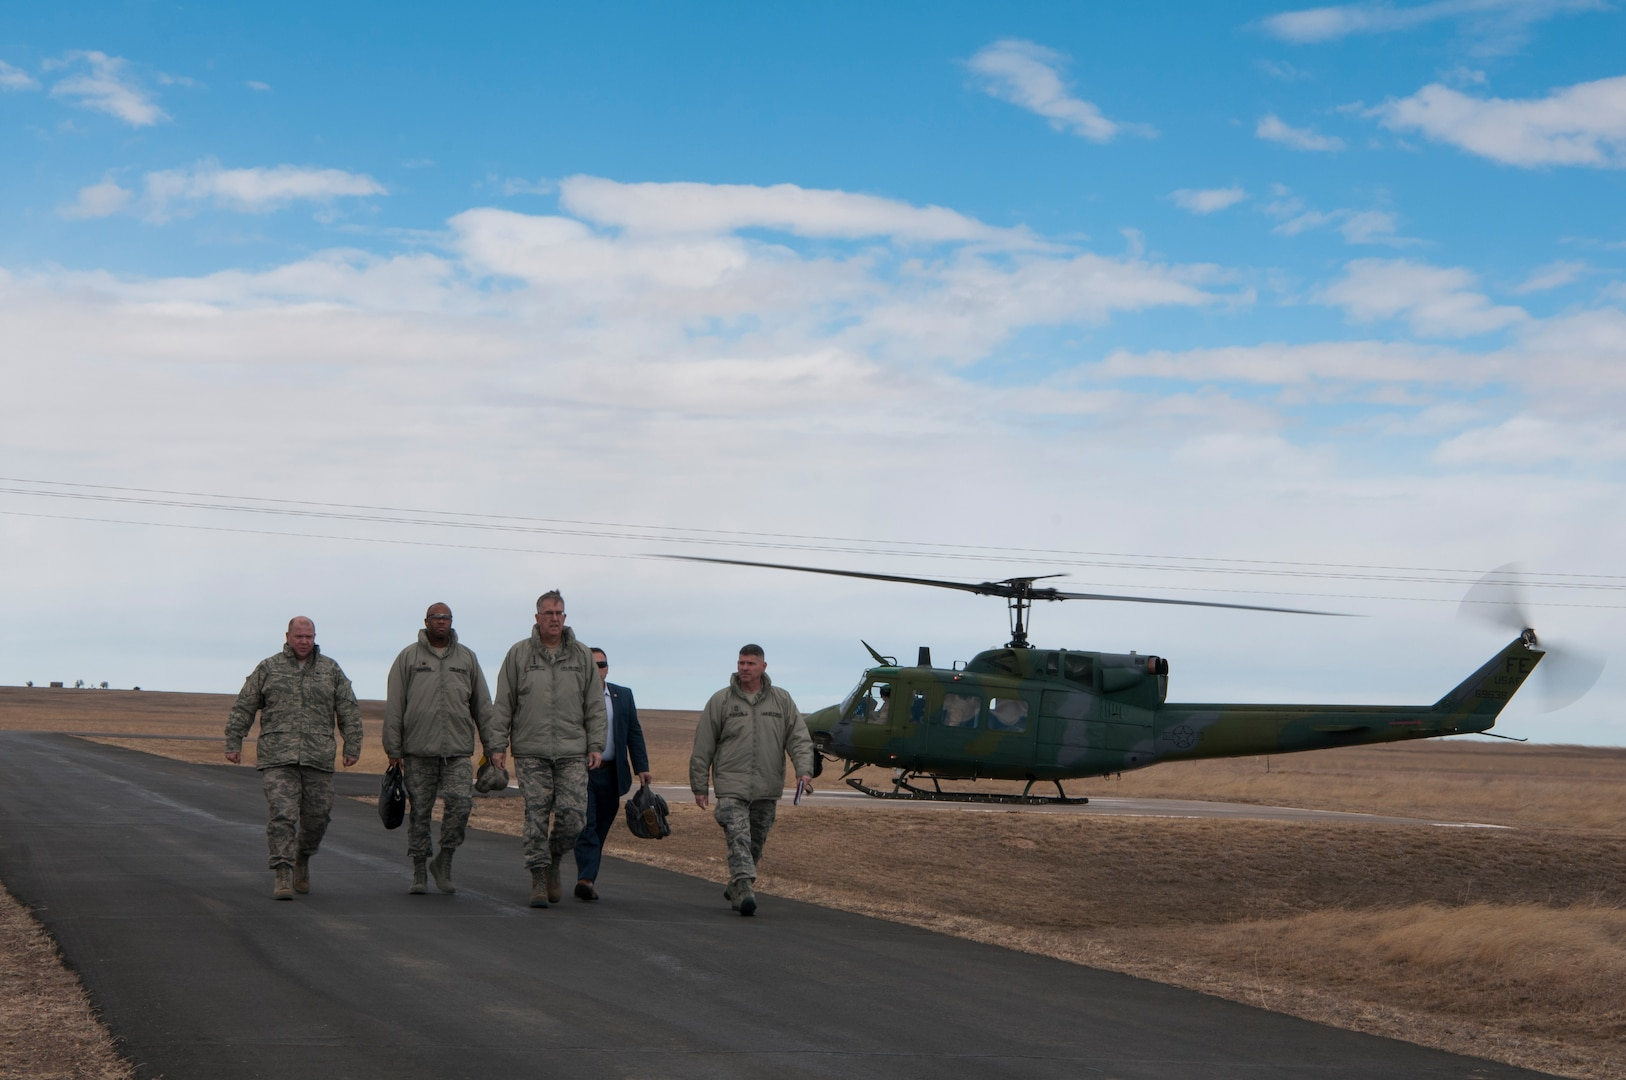 U.S. Air Force Gen. John E. Hyten, U.S. Strategic Command commander, and members of his staff depart a 37th Helicopter Squadron UH-1N Huey near a missile alert facility on the F.E. Warren Air Force Base missile complex, Feb. 22, 2017. Hyten toured the MAF, giving him insight into the responsibilities of the Airmen executing the nation's nuclear deterrence mission. This was Hyten's first visit to the 90th Missile Wing as USSTRATCOM commander.